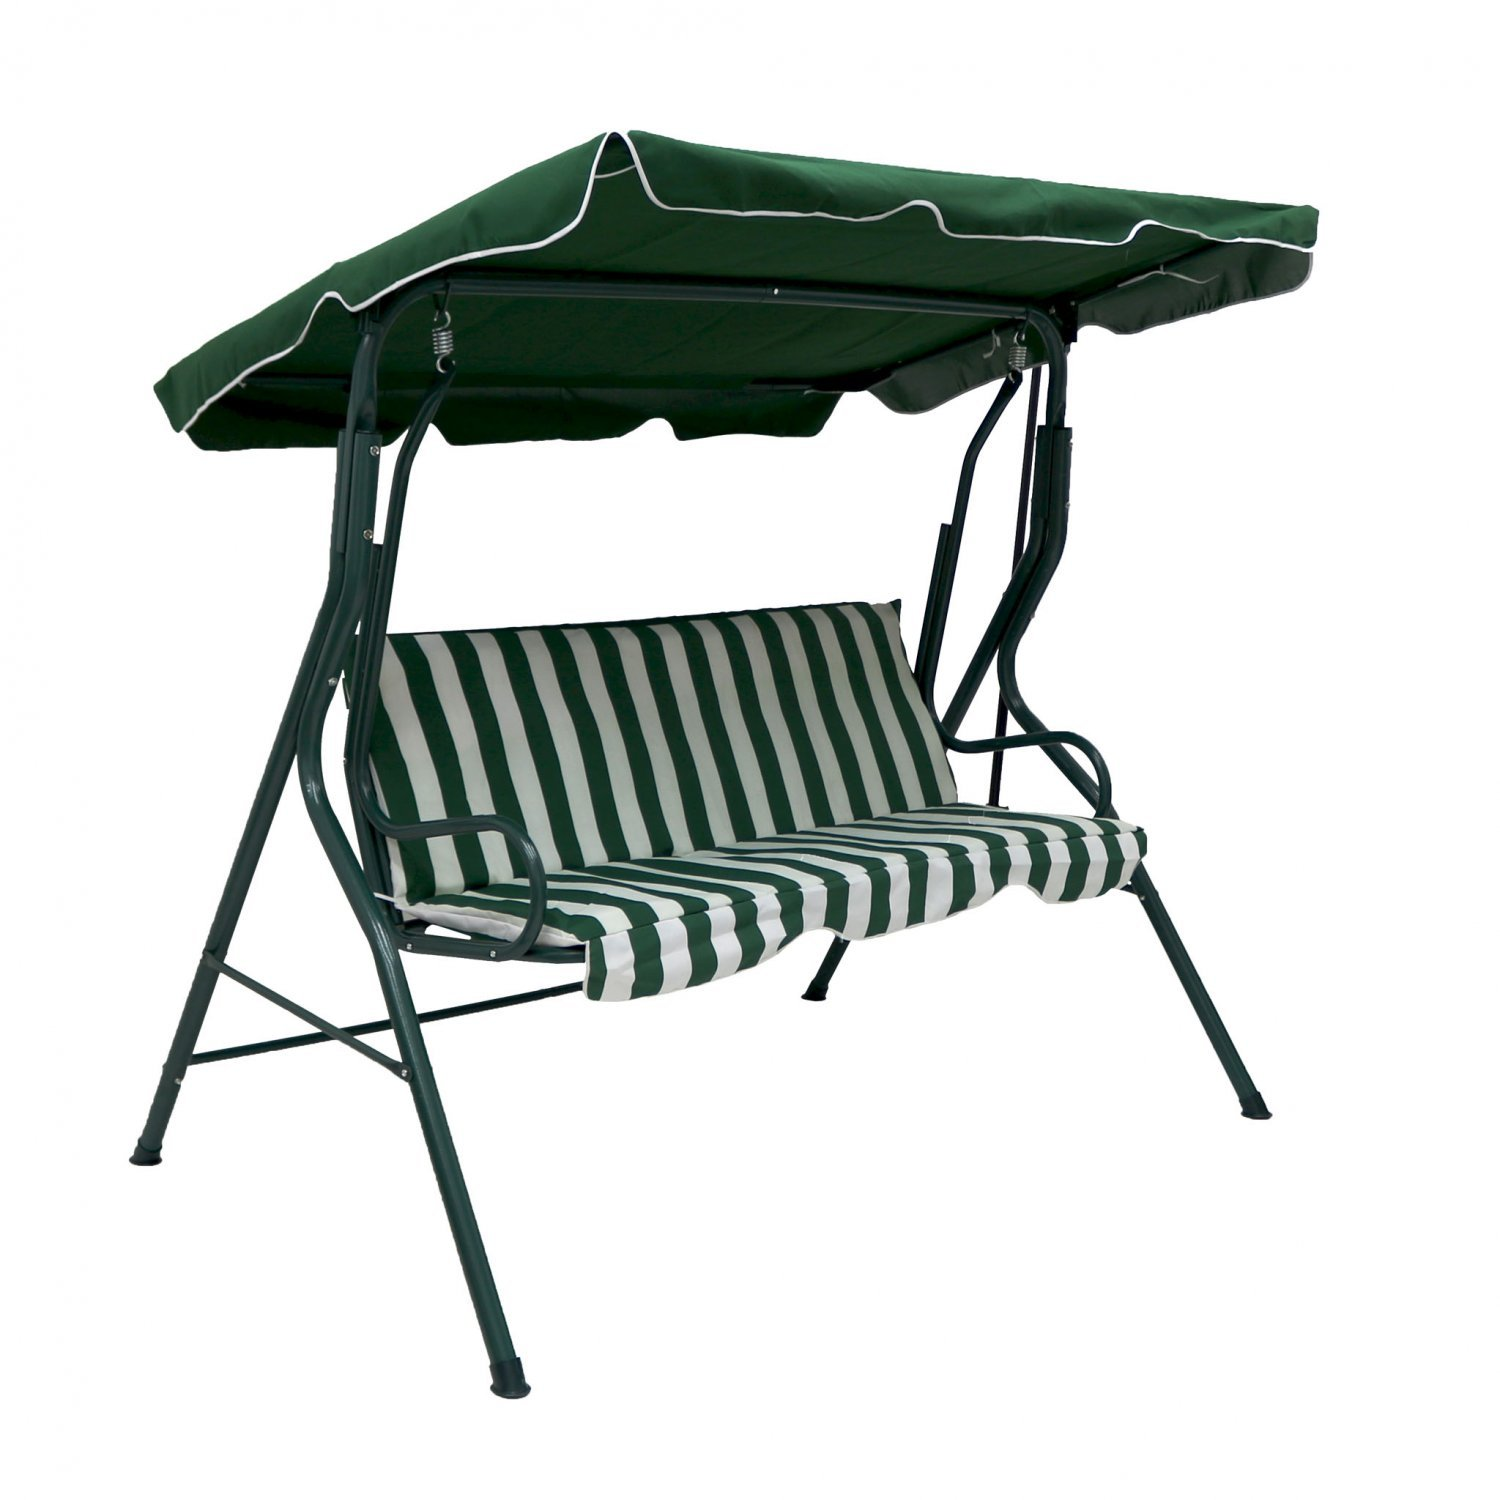 Garden Swing Bench Chair for 3 Person £52 99 Oypla Stocking